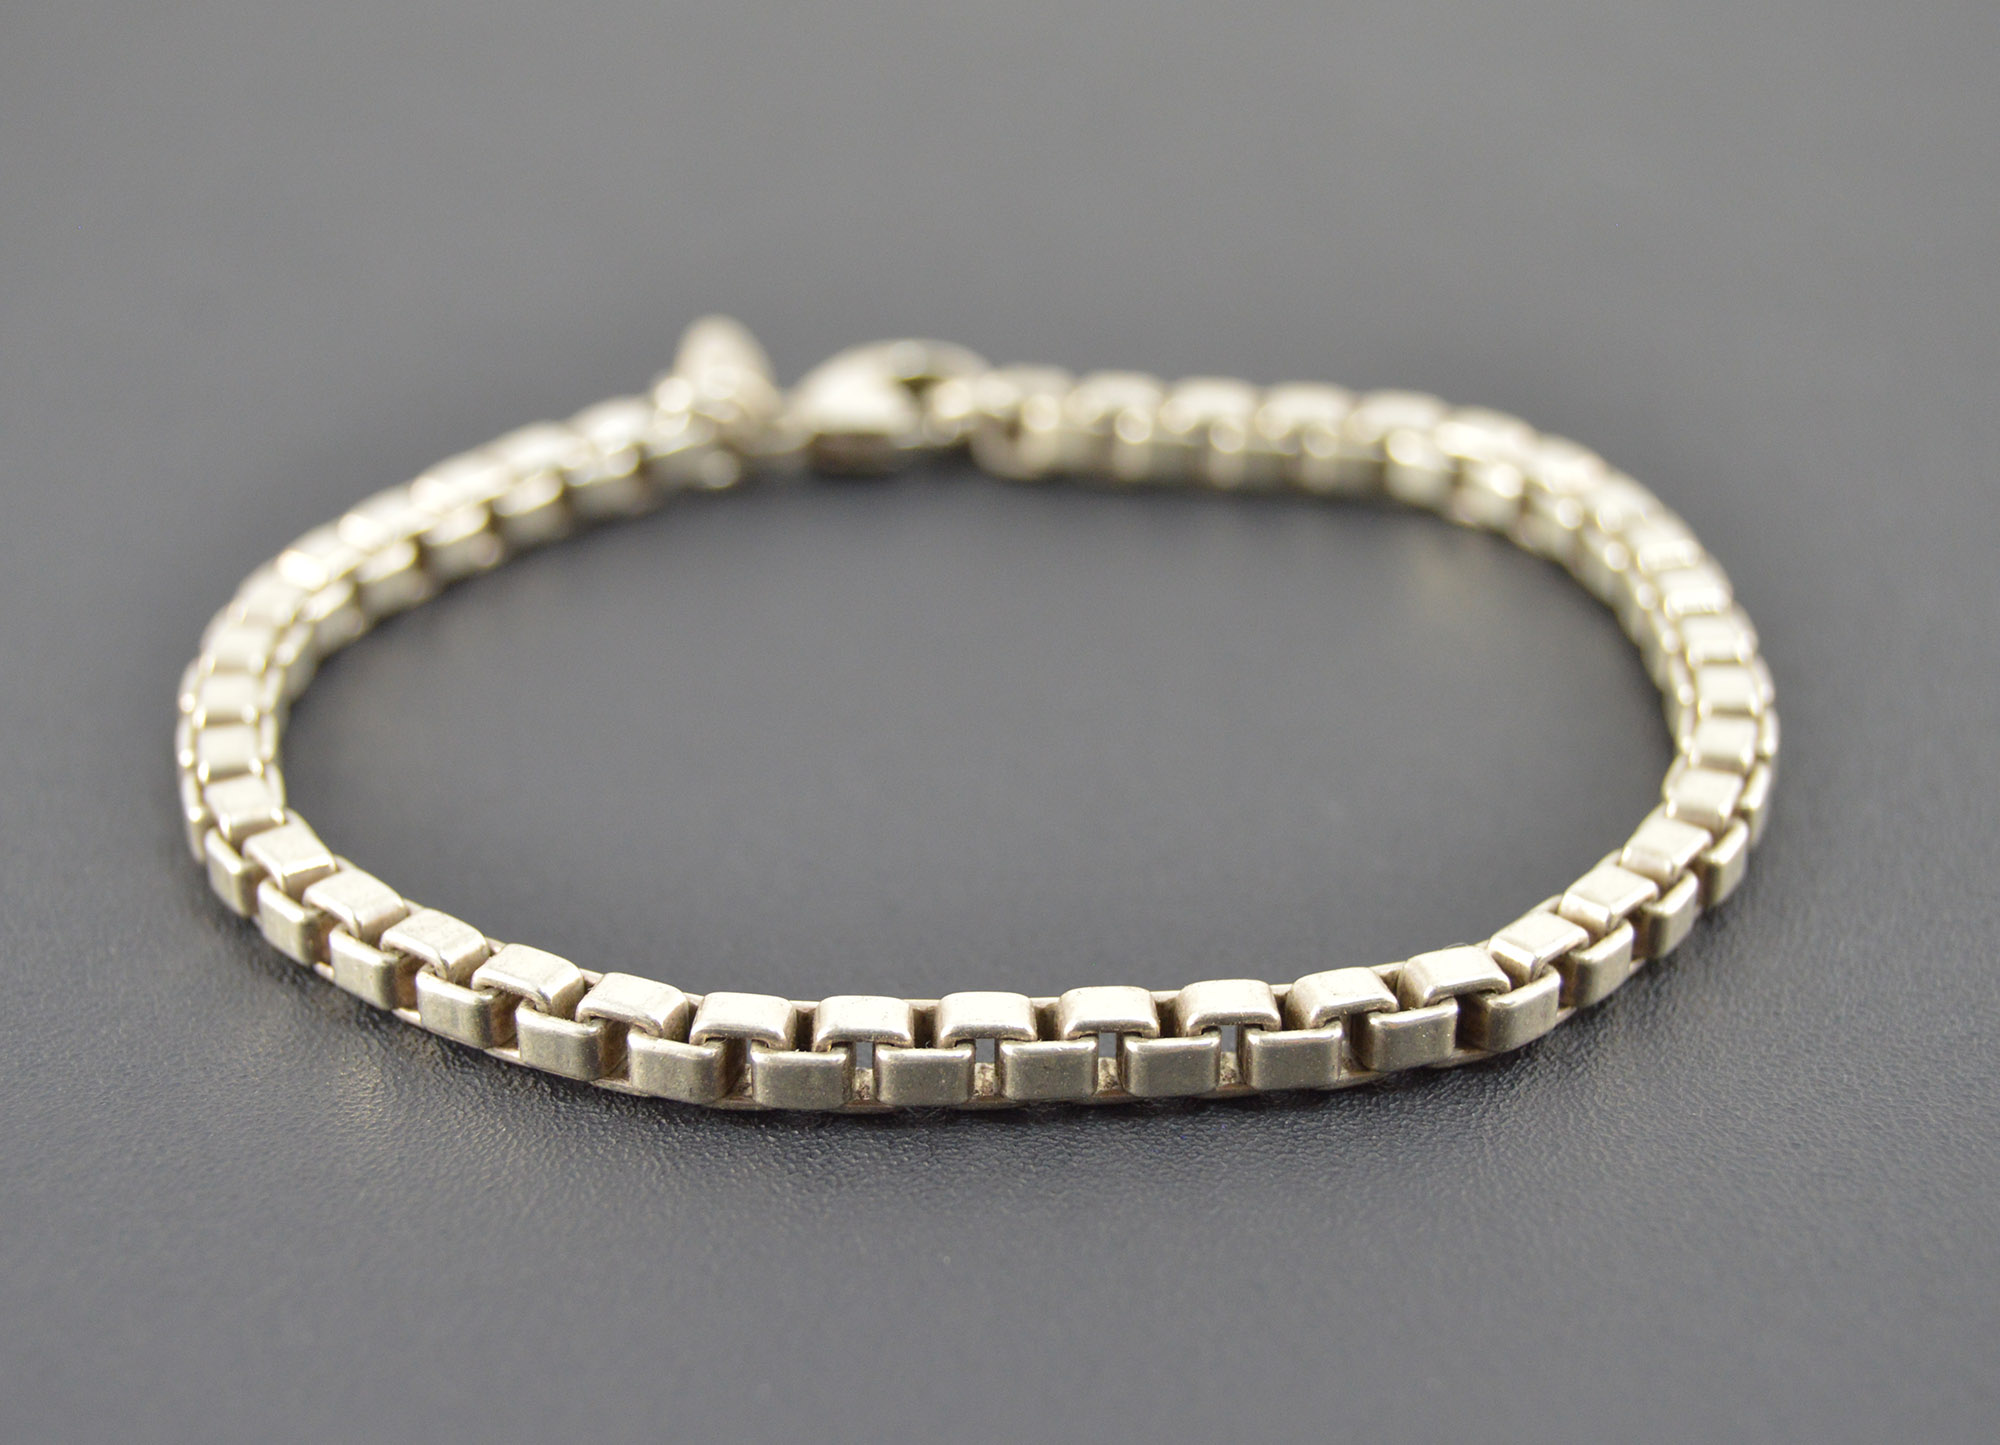 27d12a407 15.9g Solid Silver Tiffany & Co. High Retail Value Heavy Seamless ...